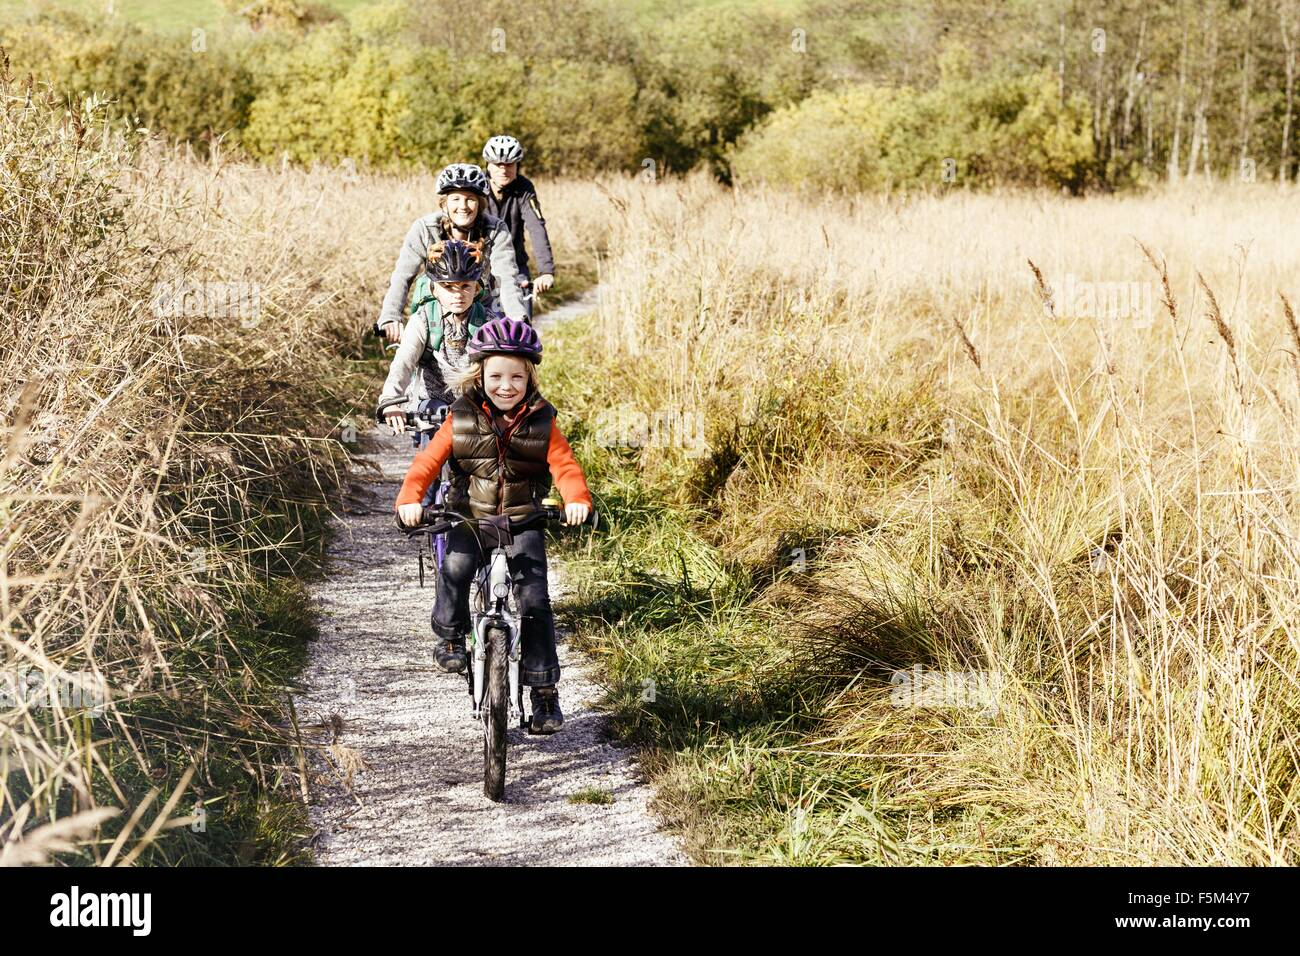 Front view of family cycling on rural path looking at camera smiling Stock Photo